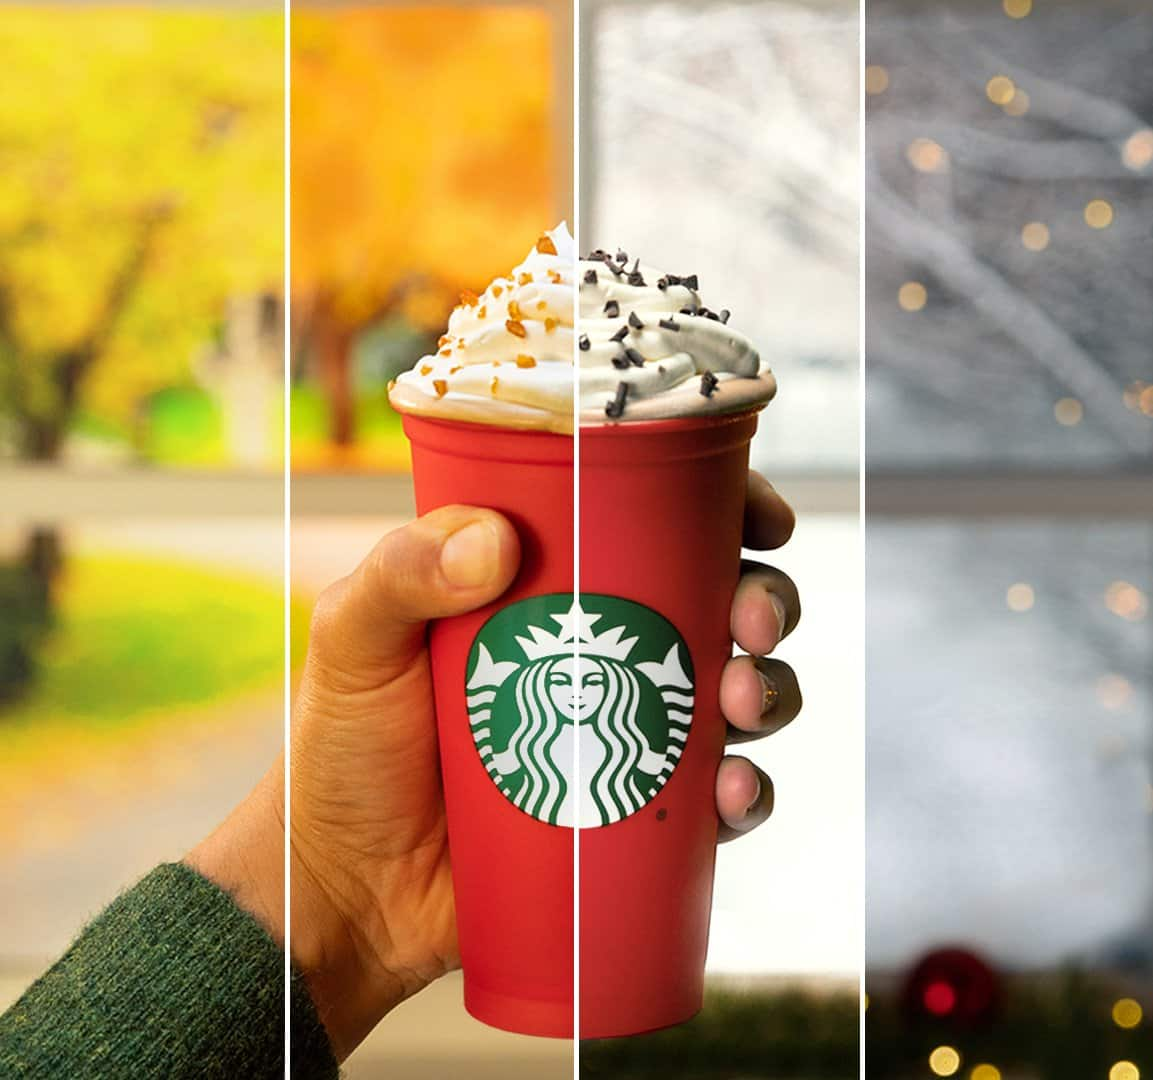 Alert: You Can Get Free Starbucks This Week Alert: You Can Get Free Starbucks This Week new picture